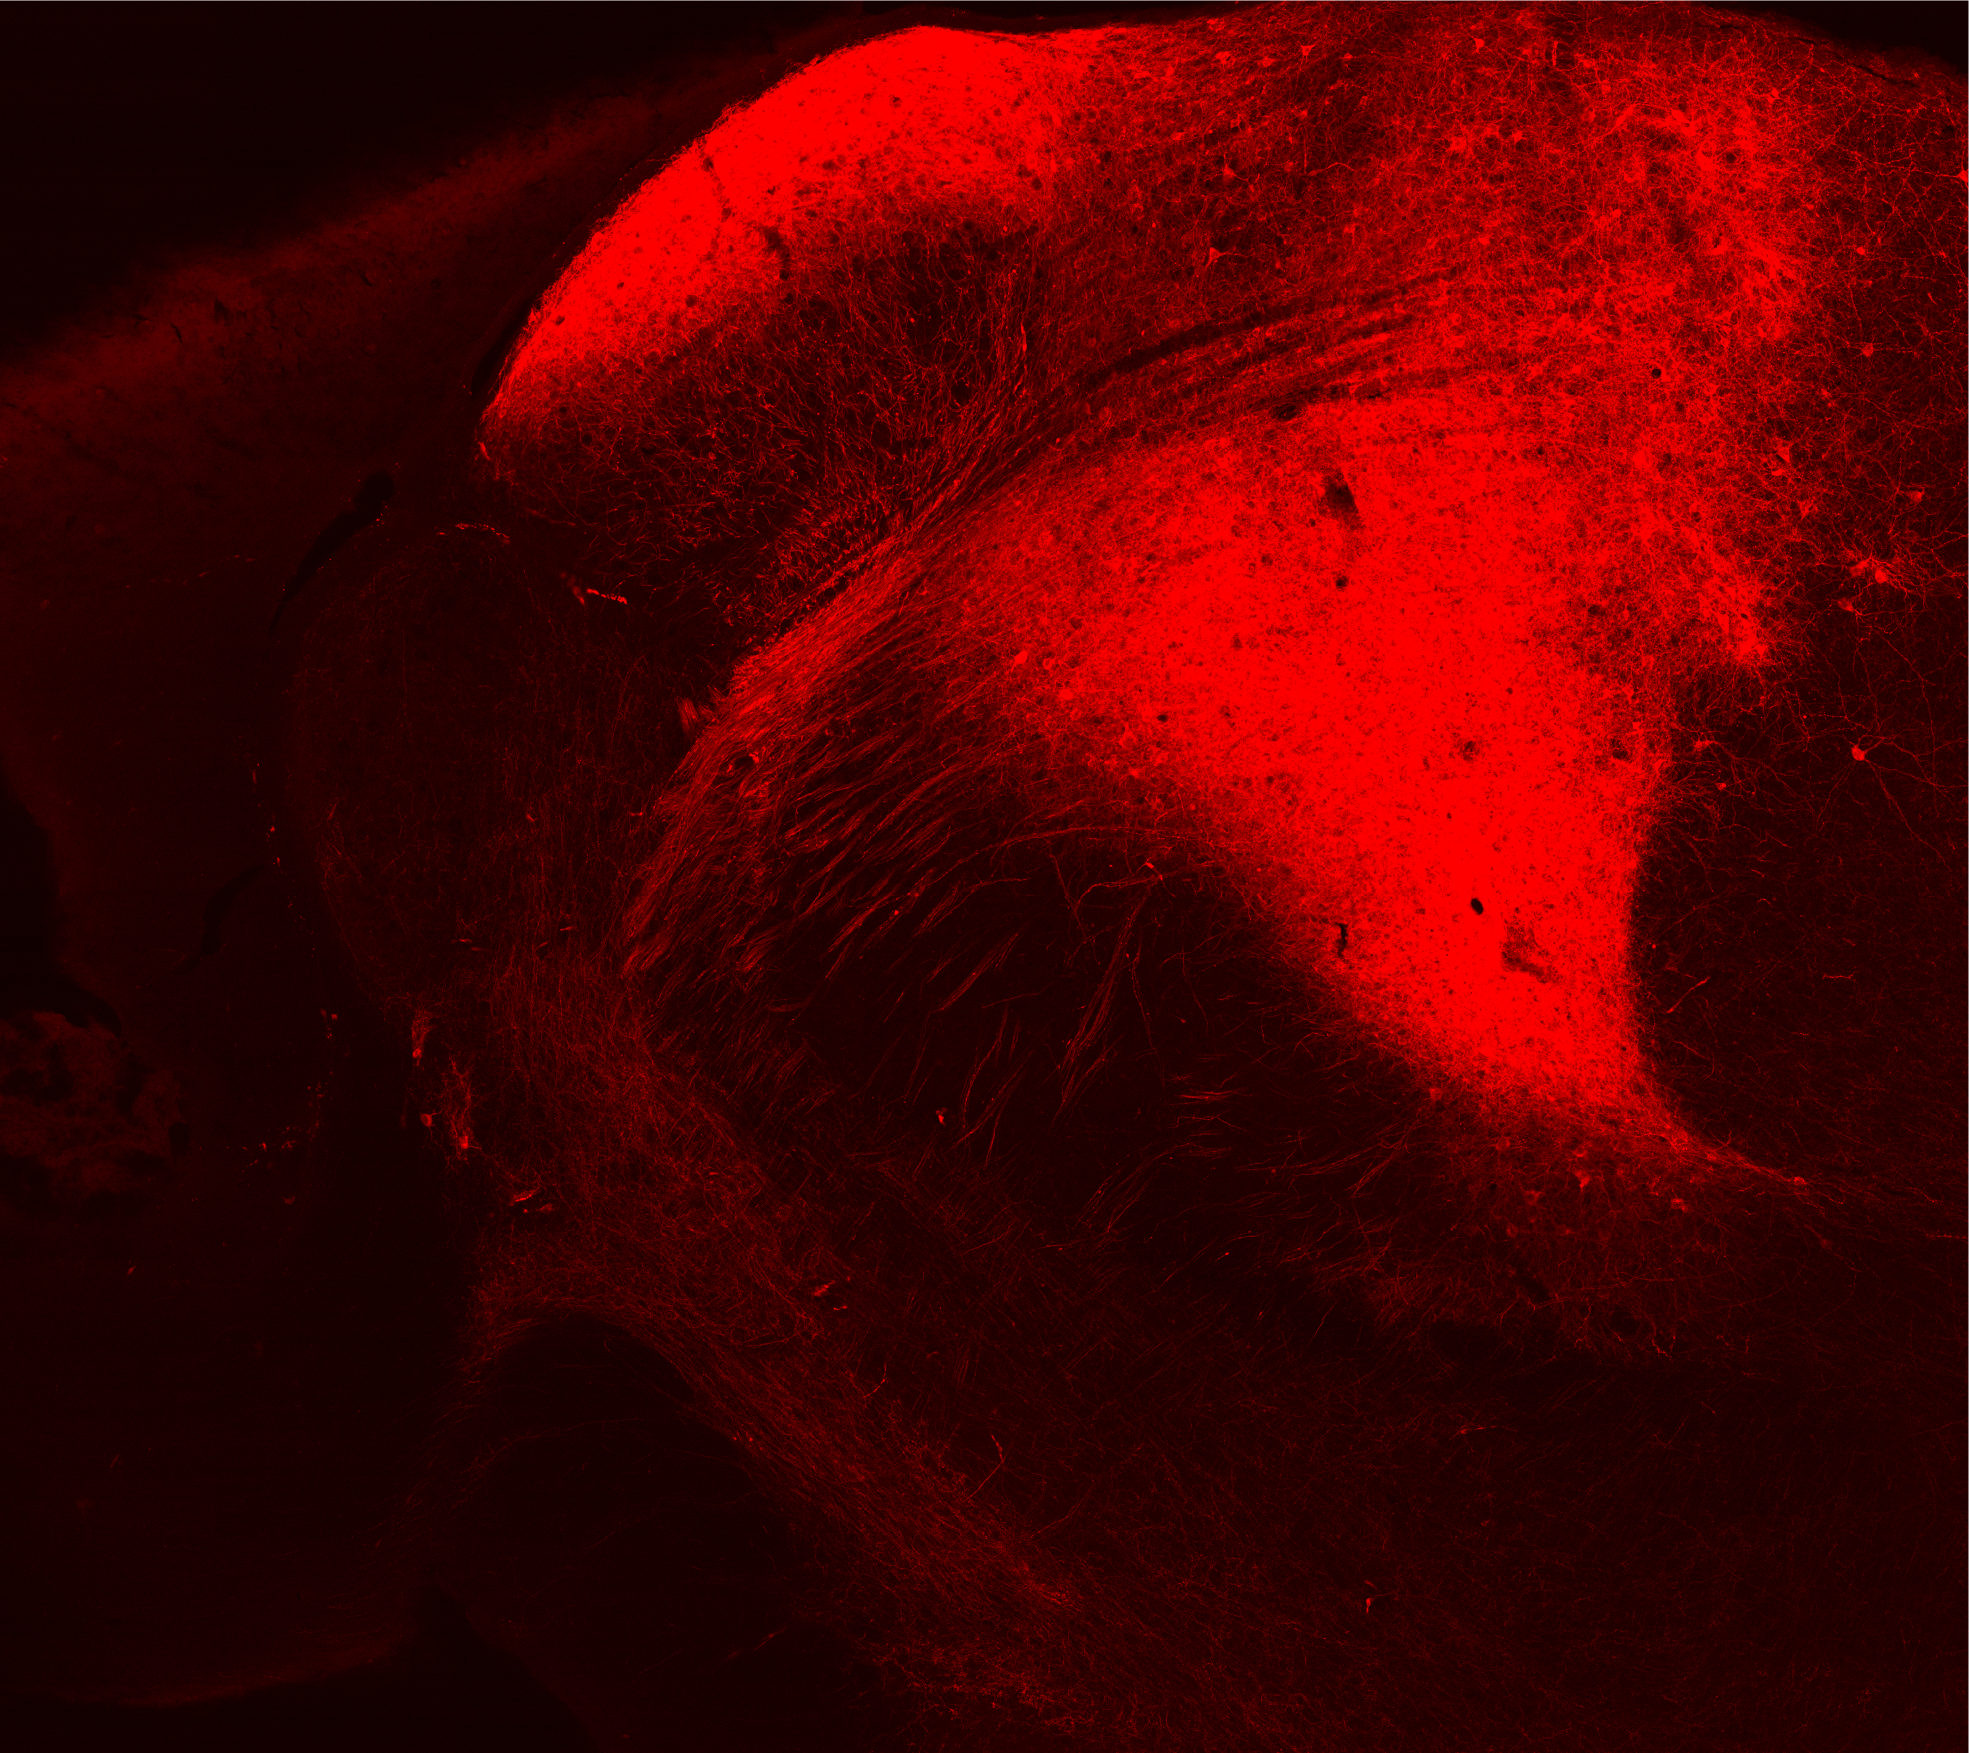 Confocal microscope image of striatal cell projections from posterior medial nucleus of the thalamus (POm)